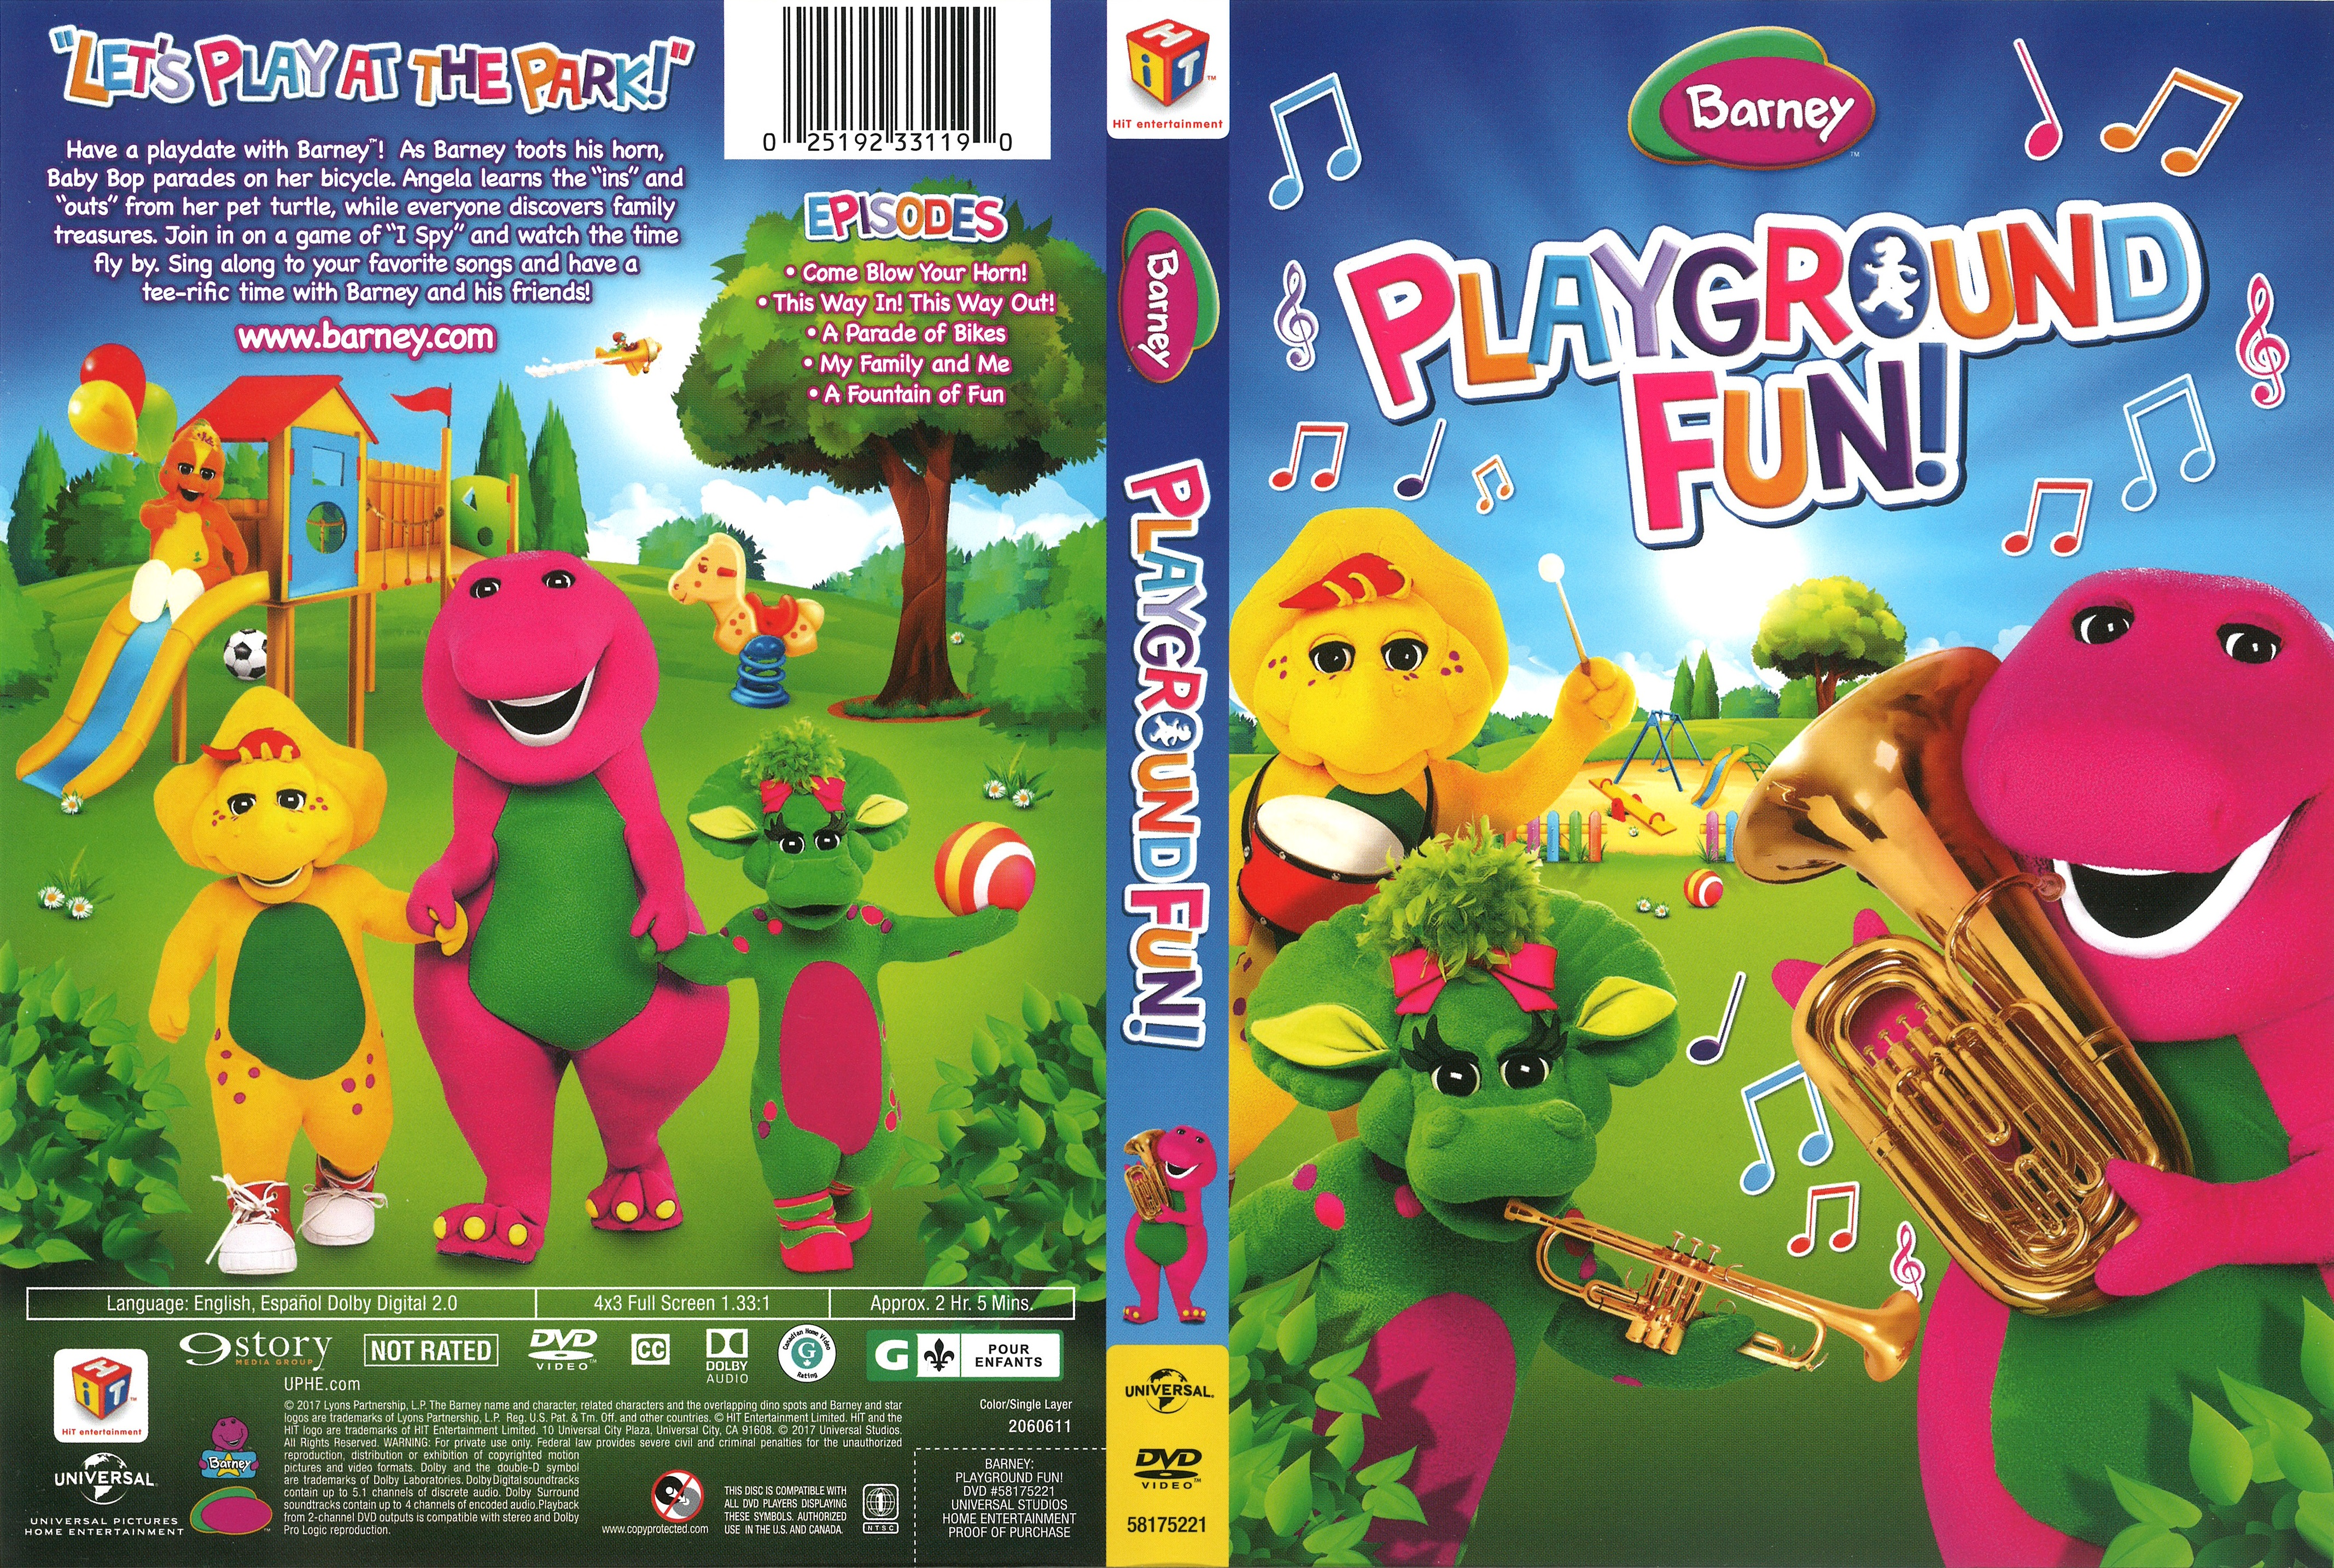 Barney Playground Fun (2017) R1 Cover | Dvd Covers and Labels